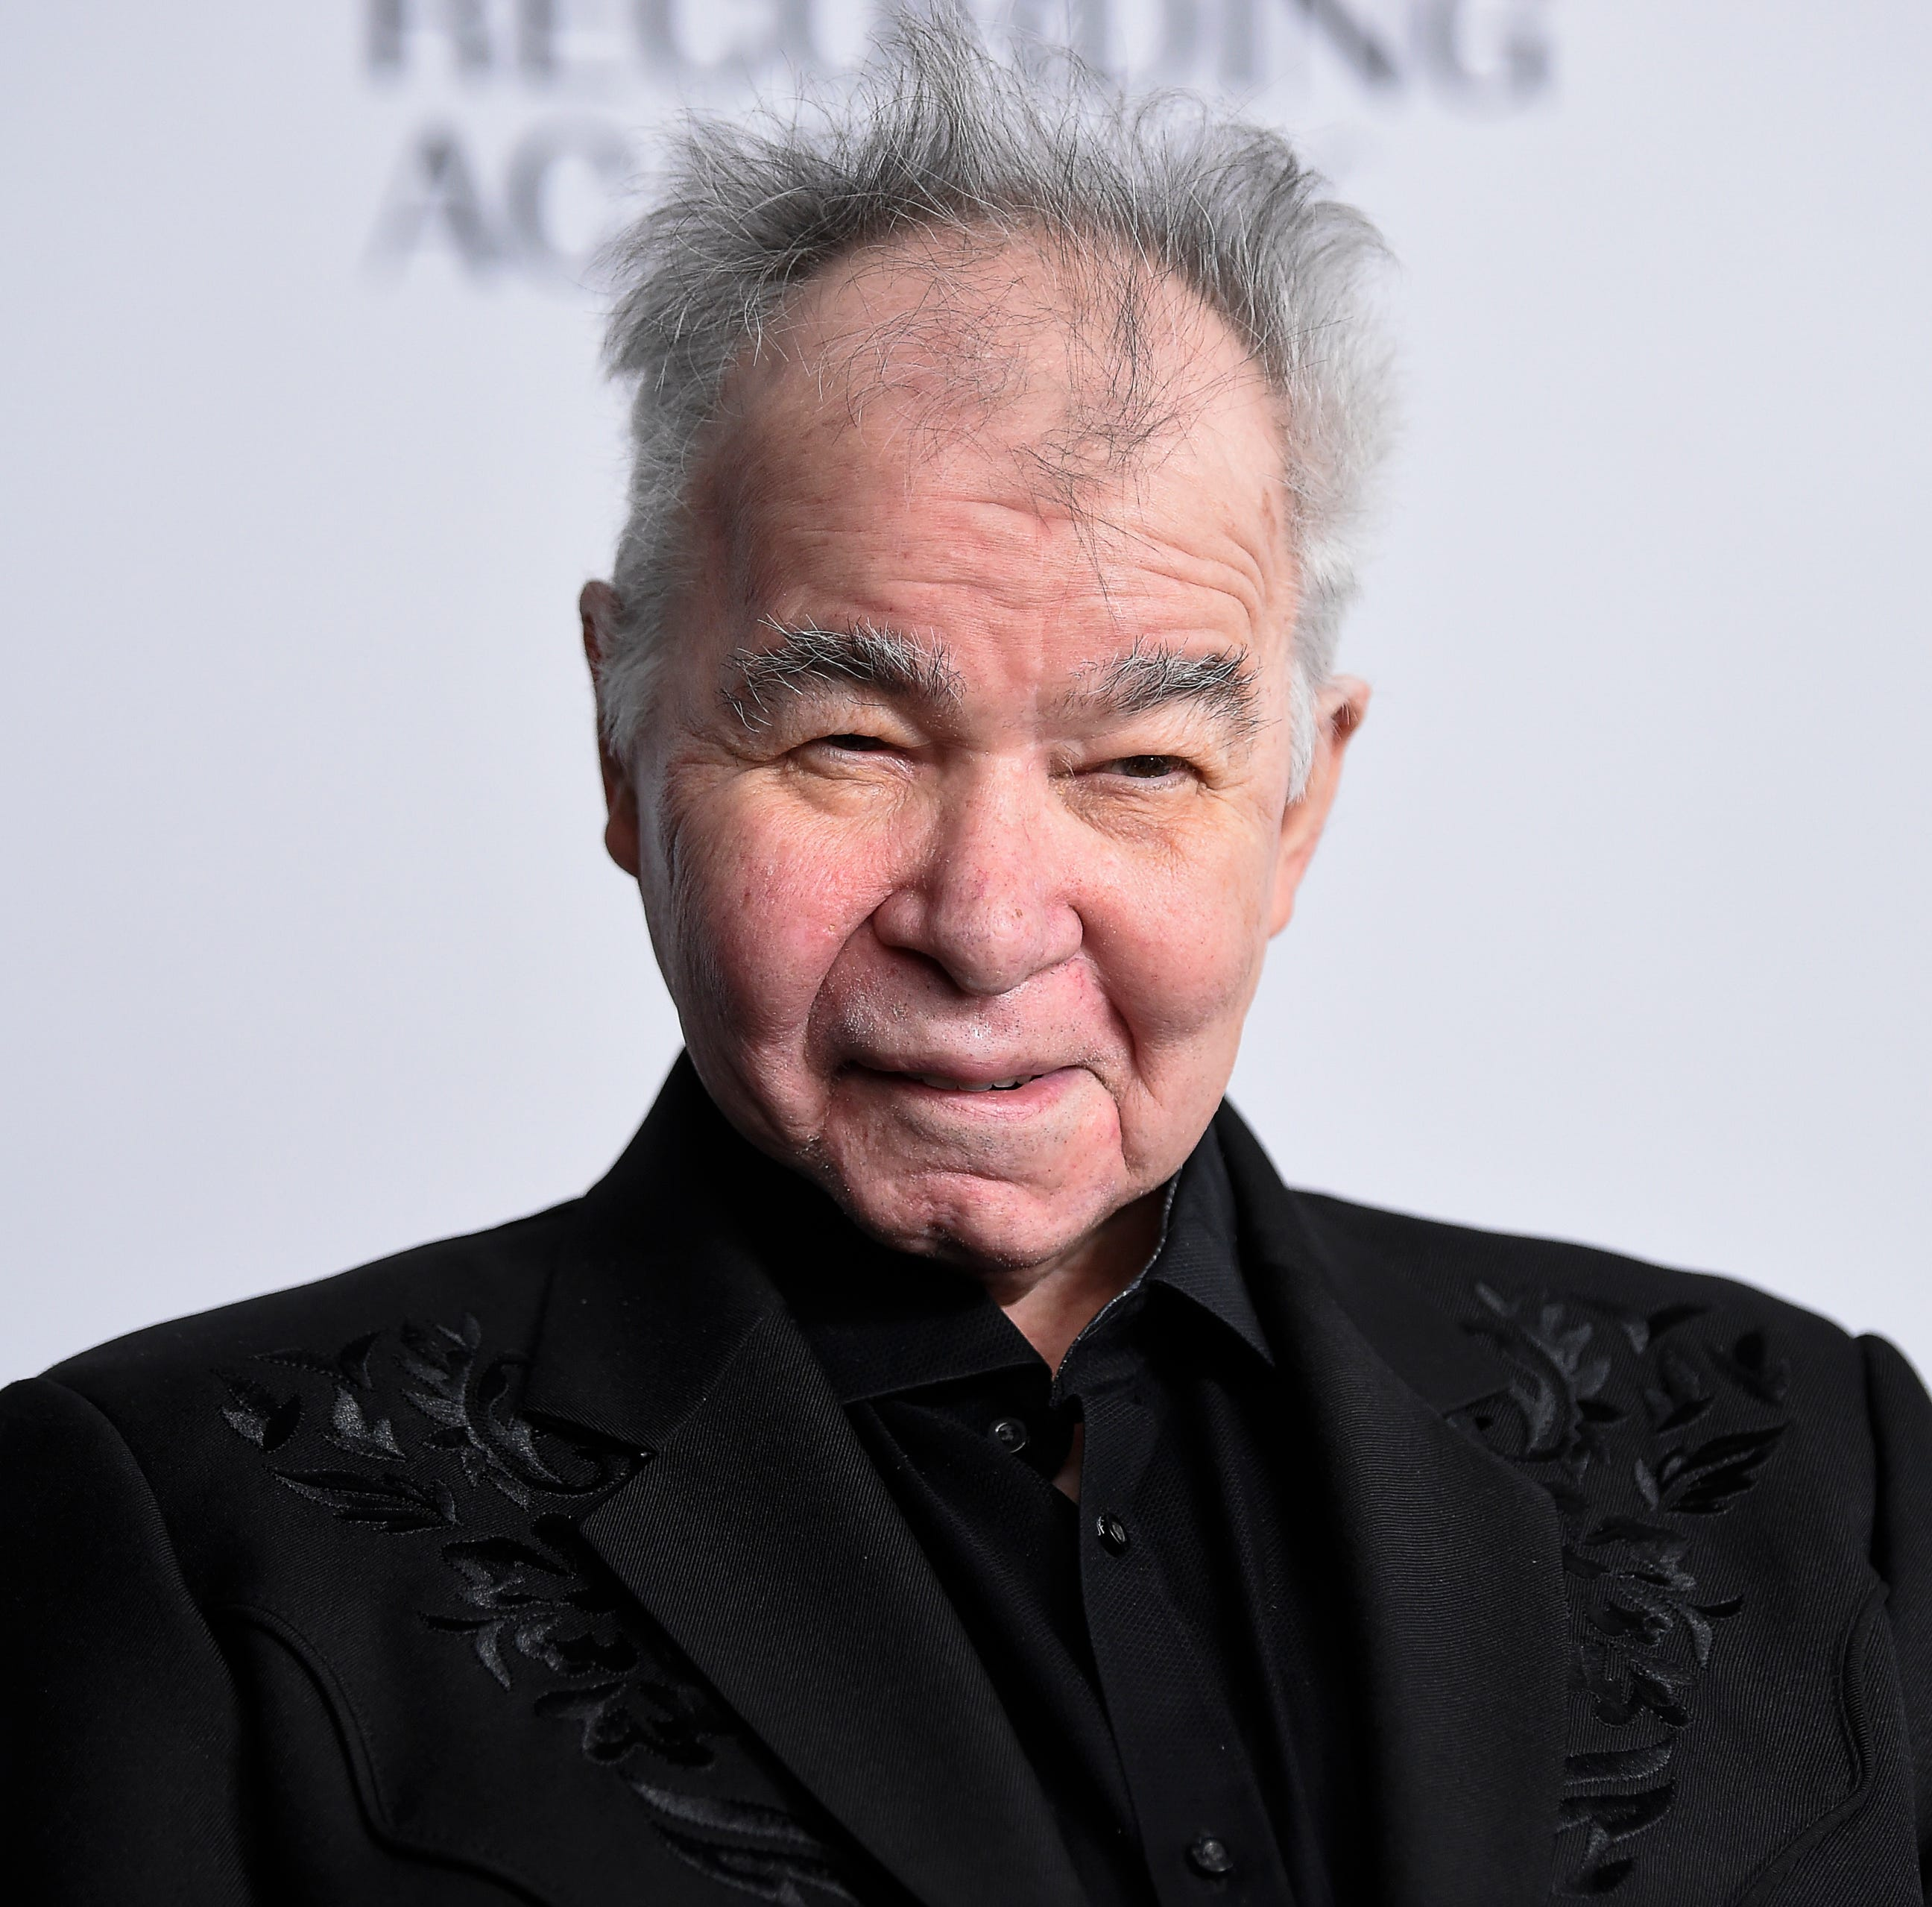 John Prine returning to Opry House for New Year's Eve celebration